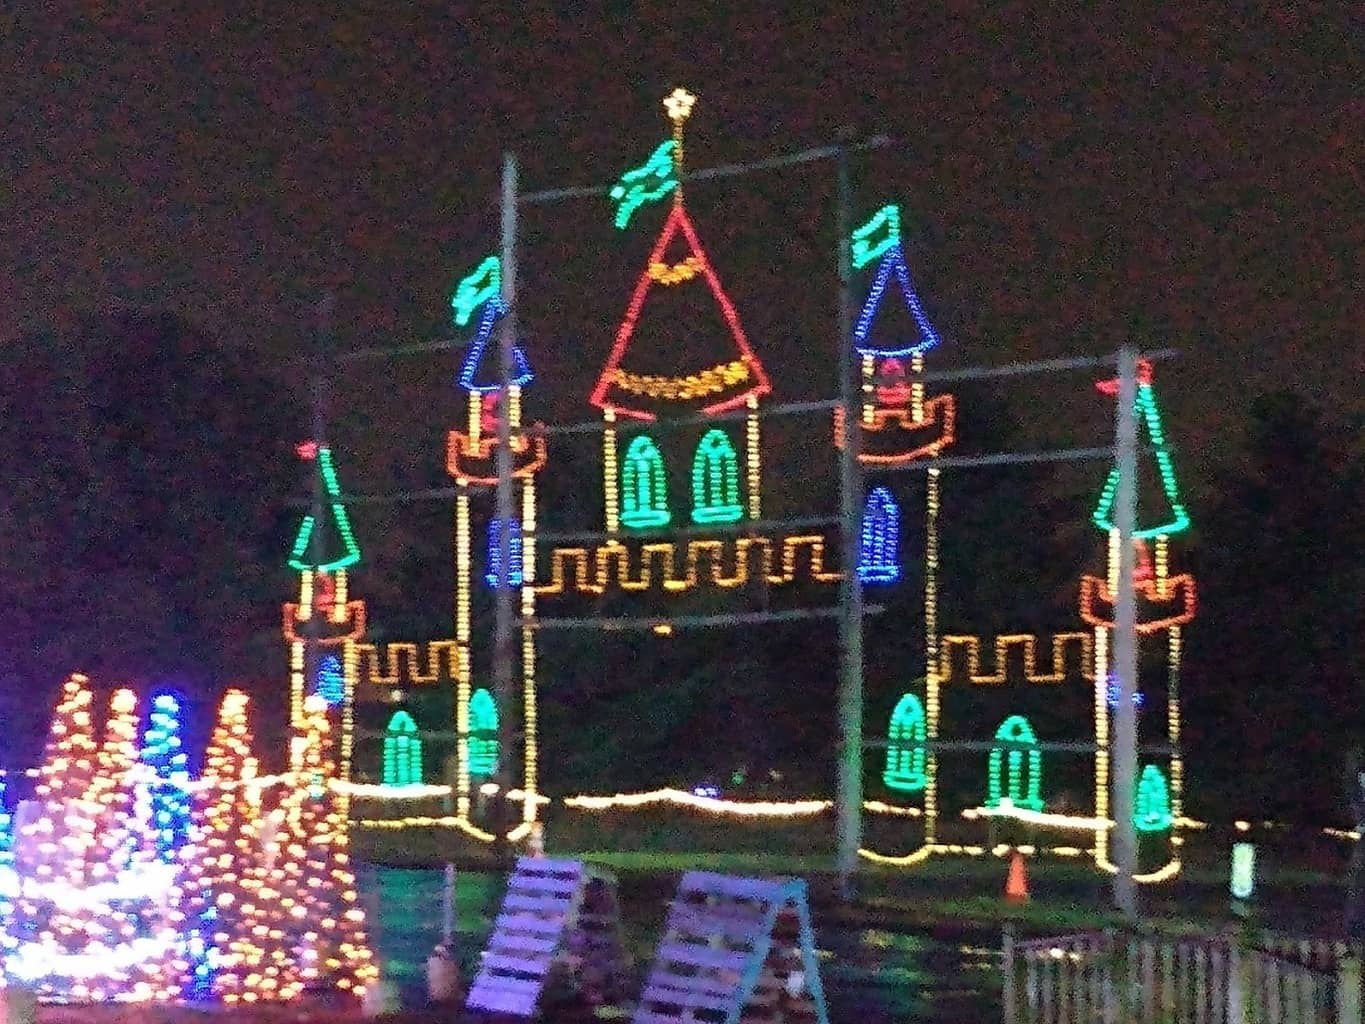 Christmas Light Castle - Shadybrook Farms 2019